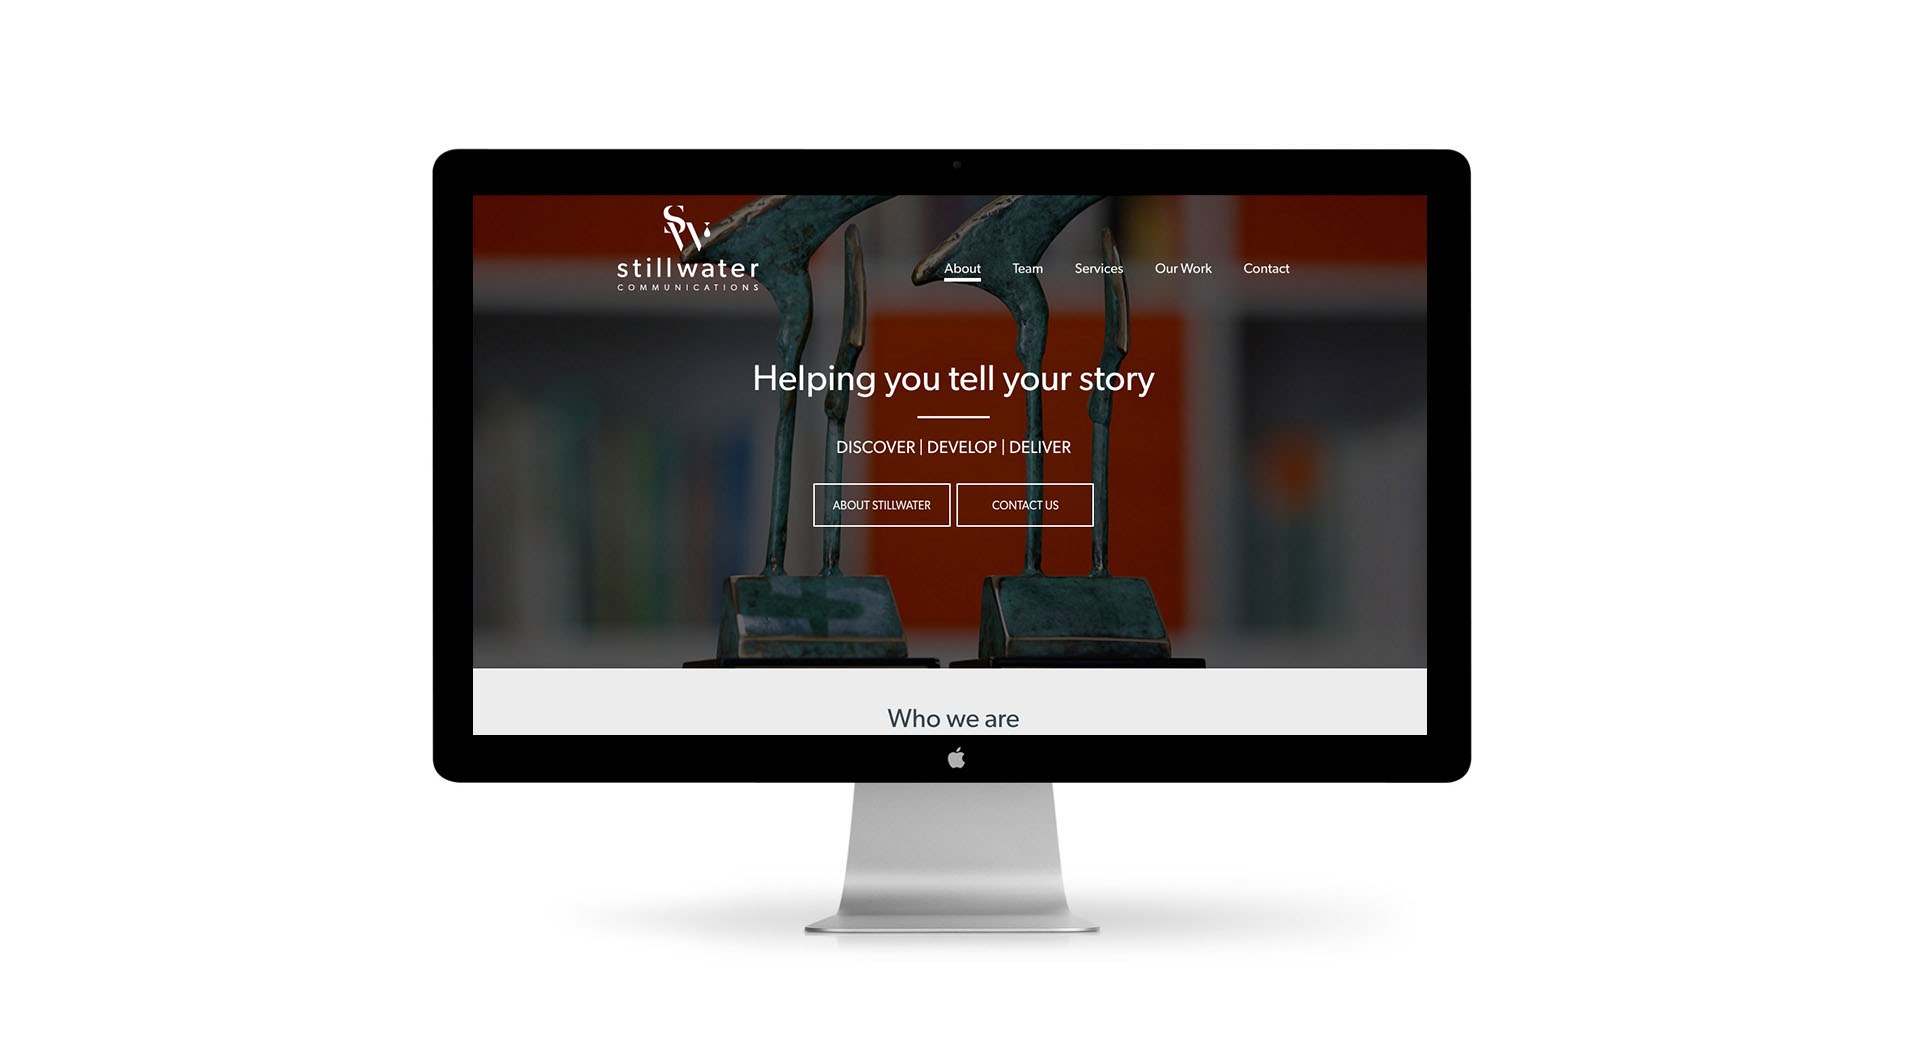 Stillwater Communications Website Design Home Page Layout.